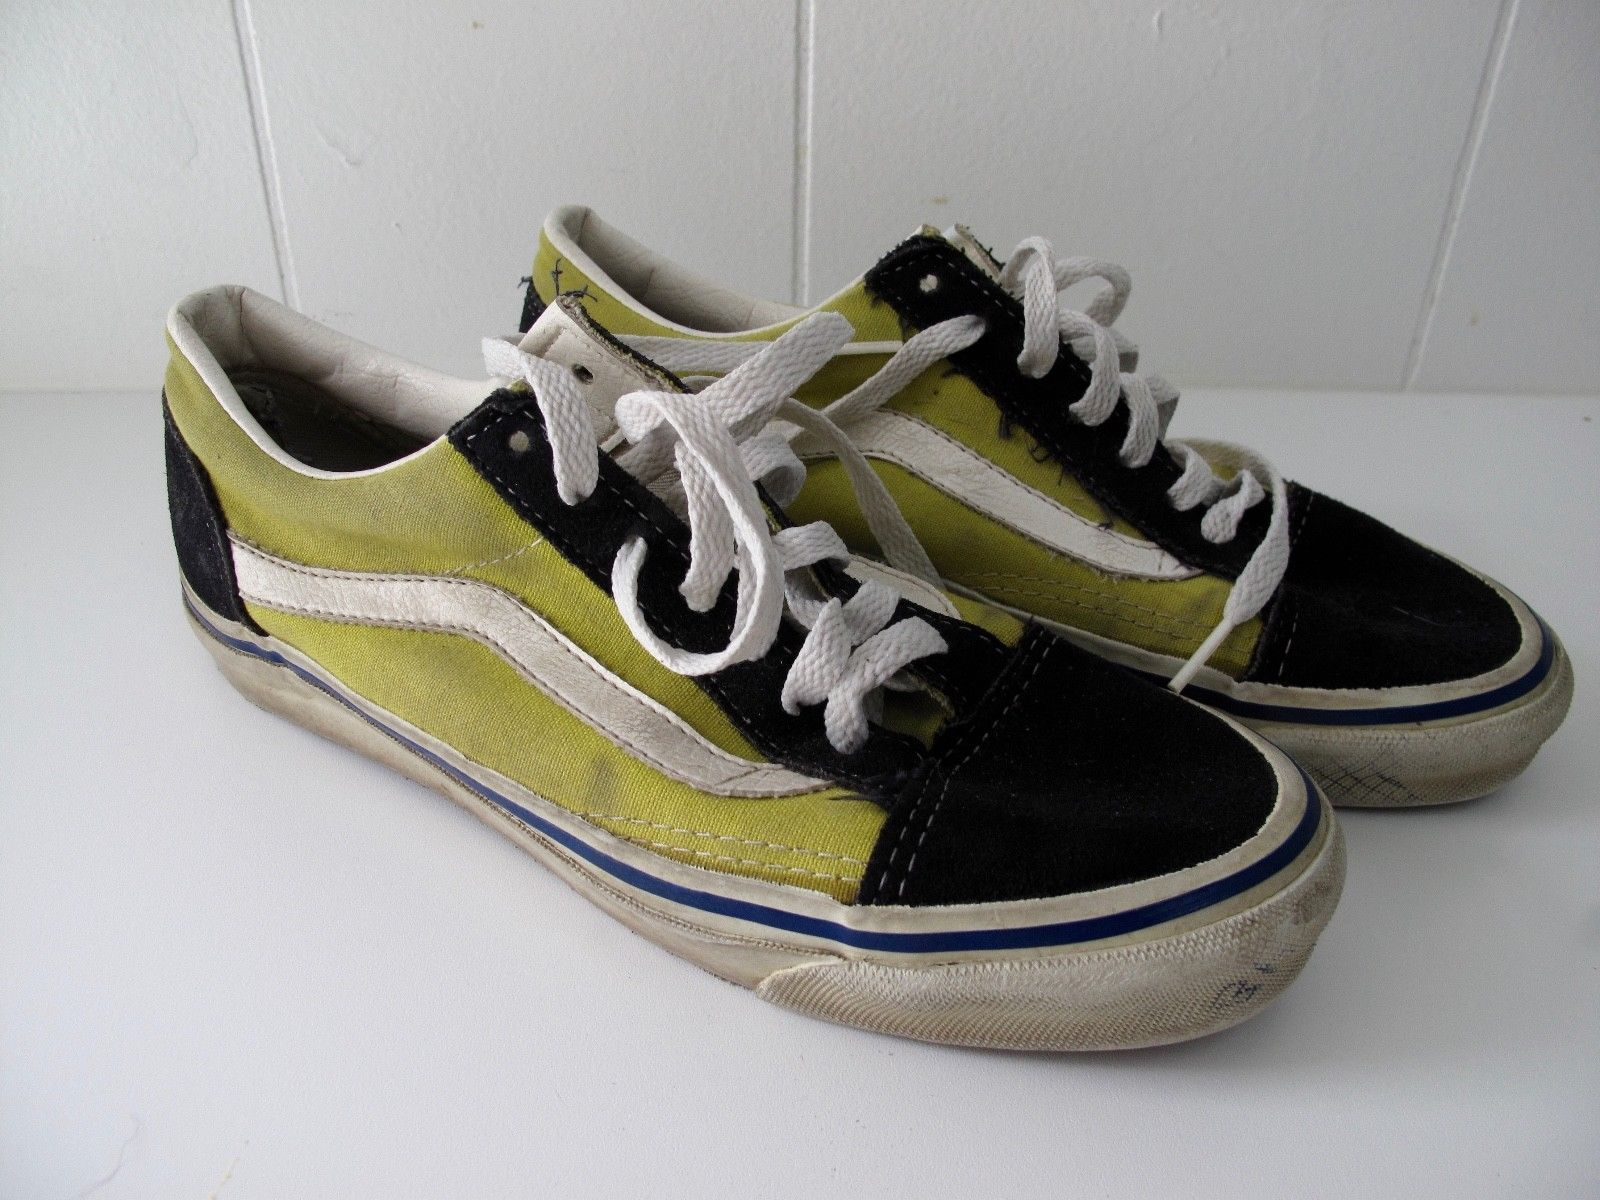 Vintage Vans Old Skool Made in USA Size 8 8.5 Yellow Black